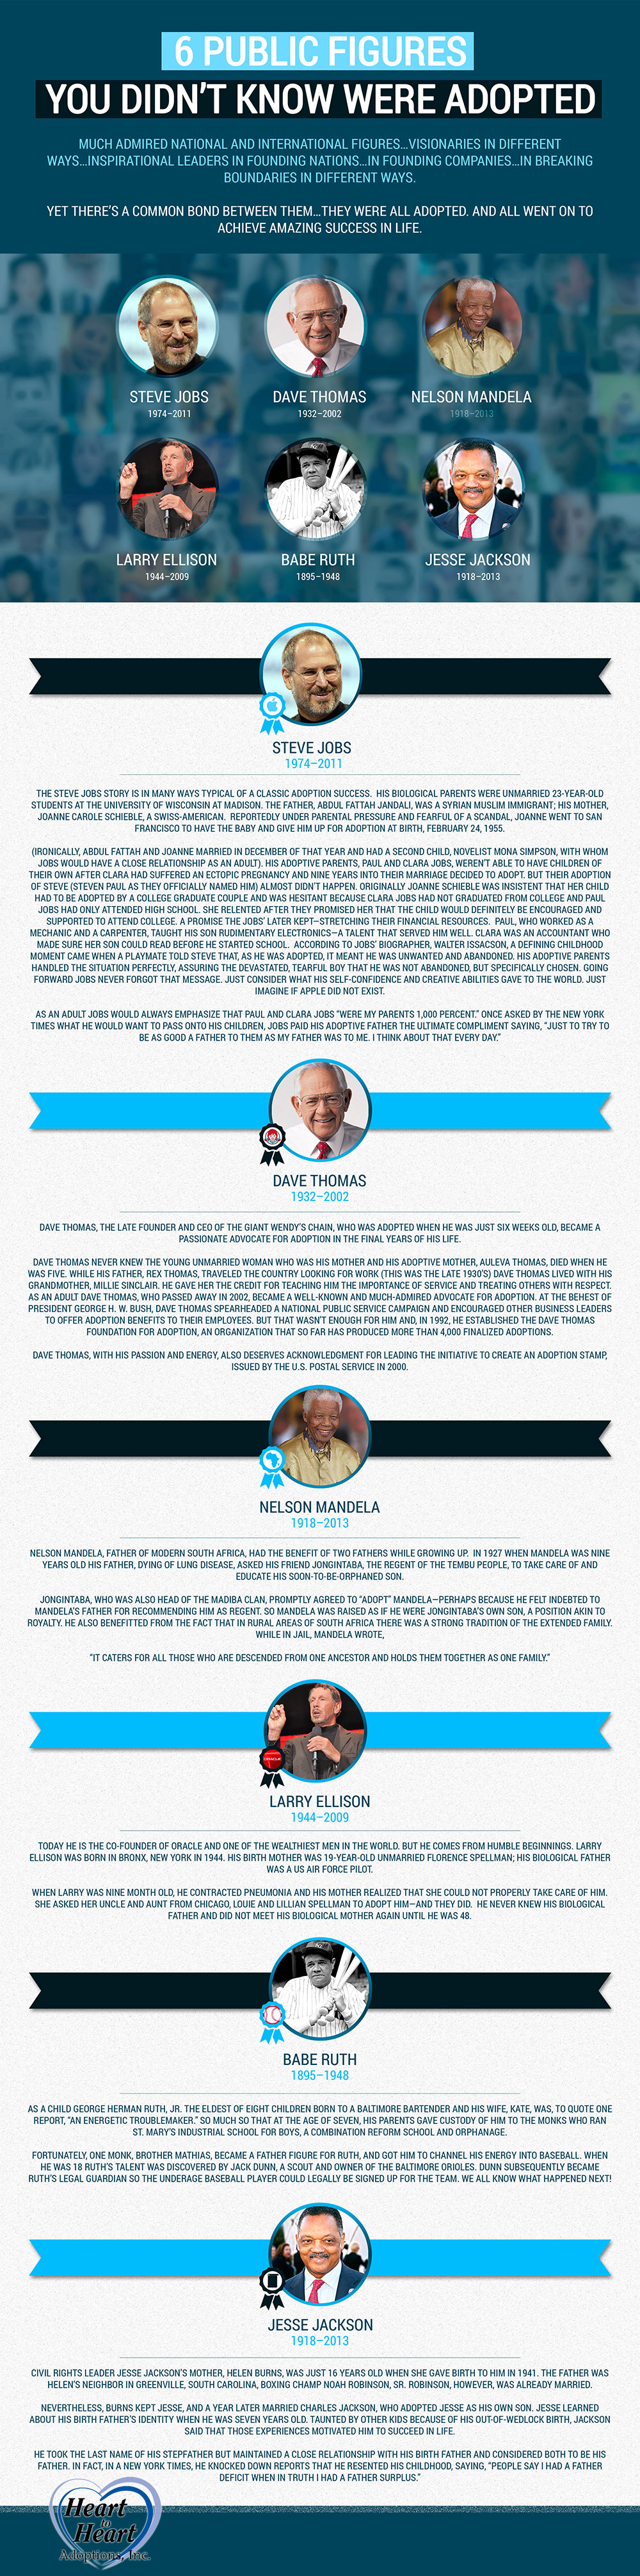 6 Adopted Public Figures Infographic